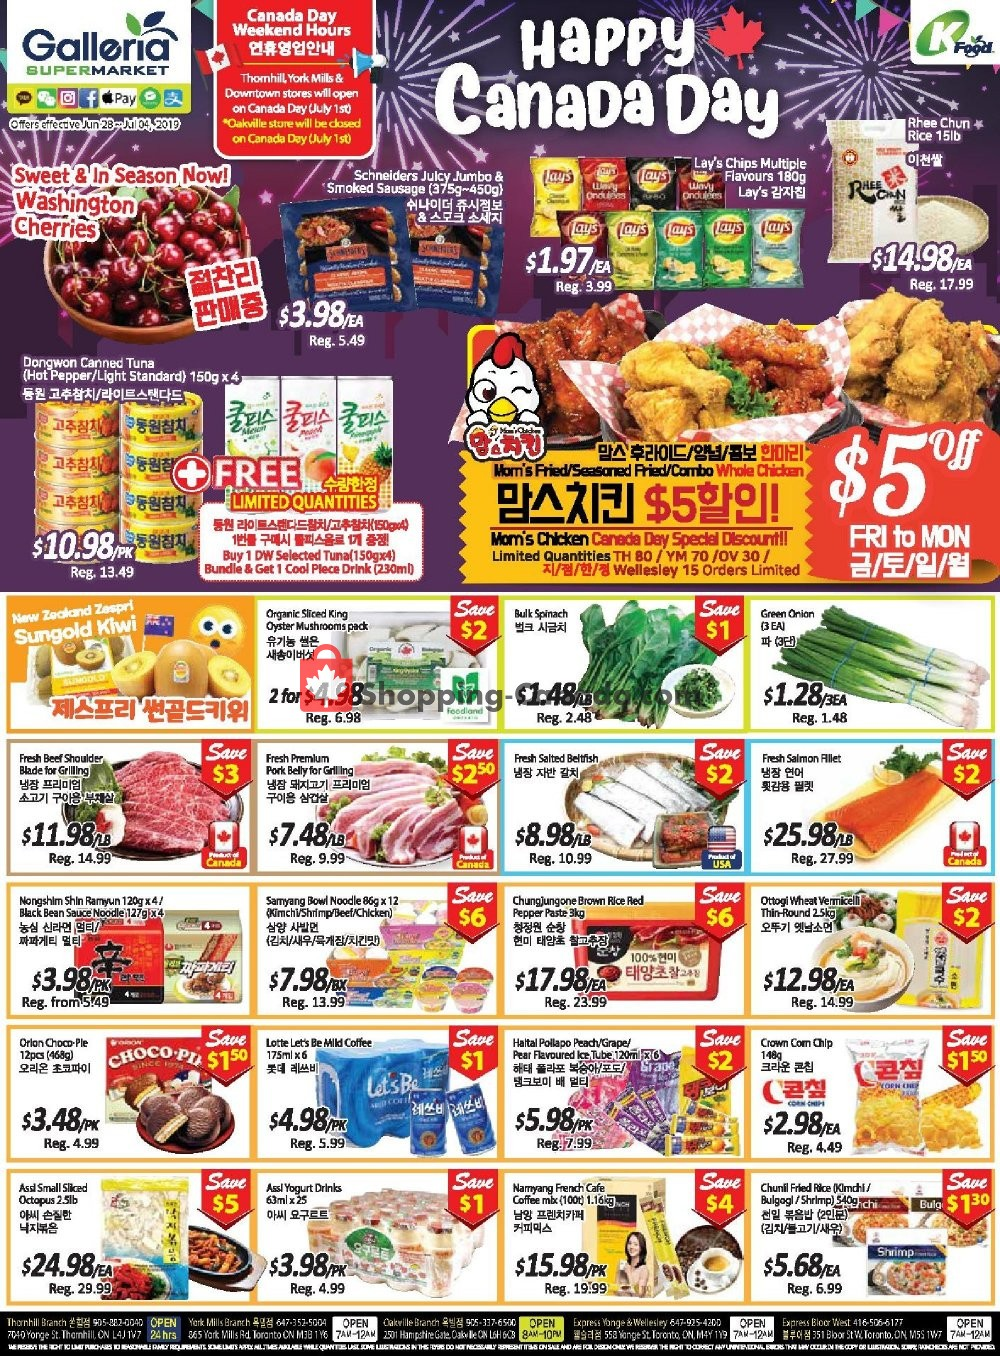 Flyer Galleria Supermarket Canada - from Friday June 28, 2019 to Thursday July 4, 2019